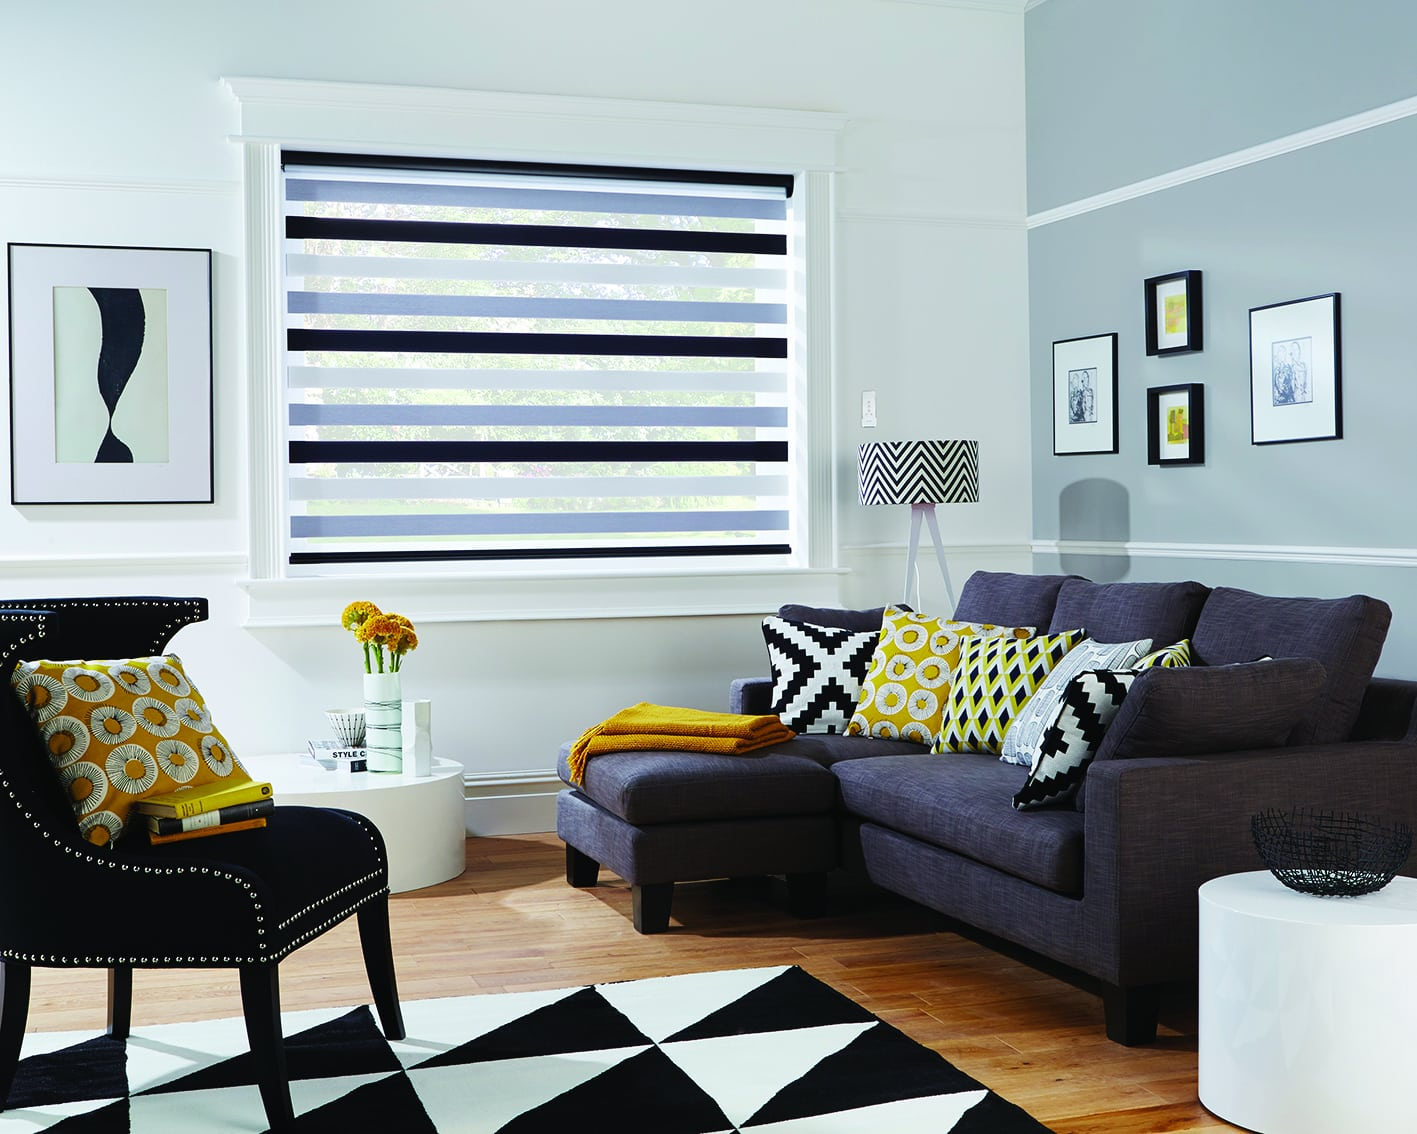 Vision blinds: in the living room